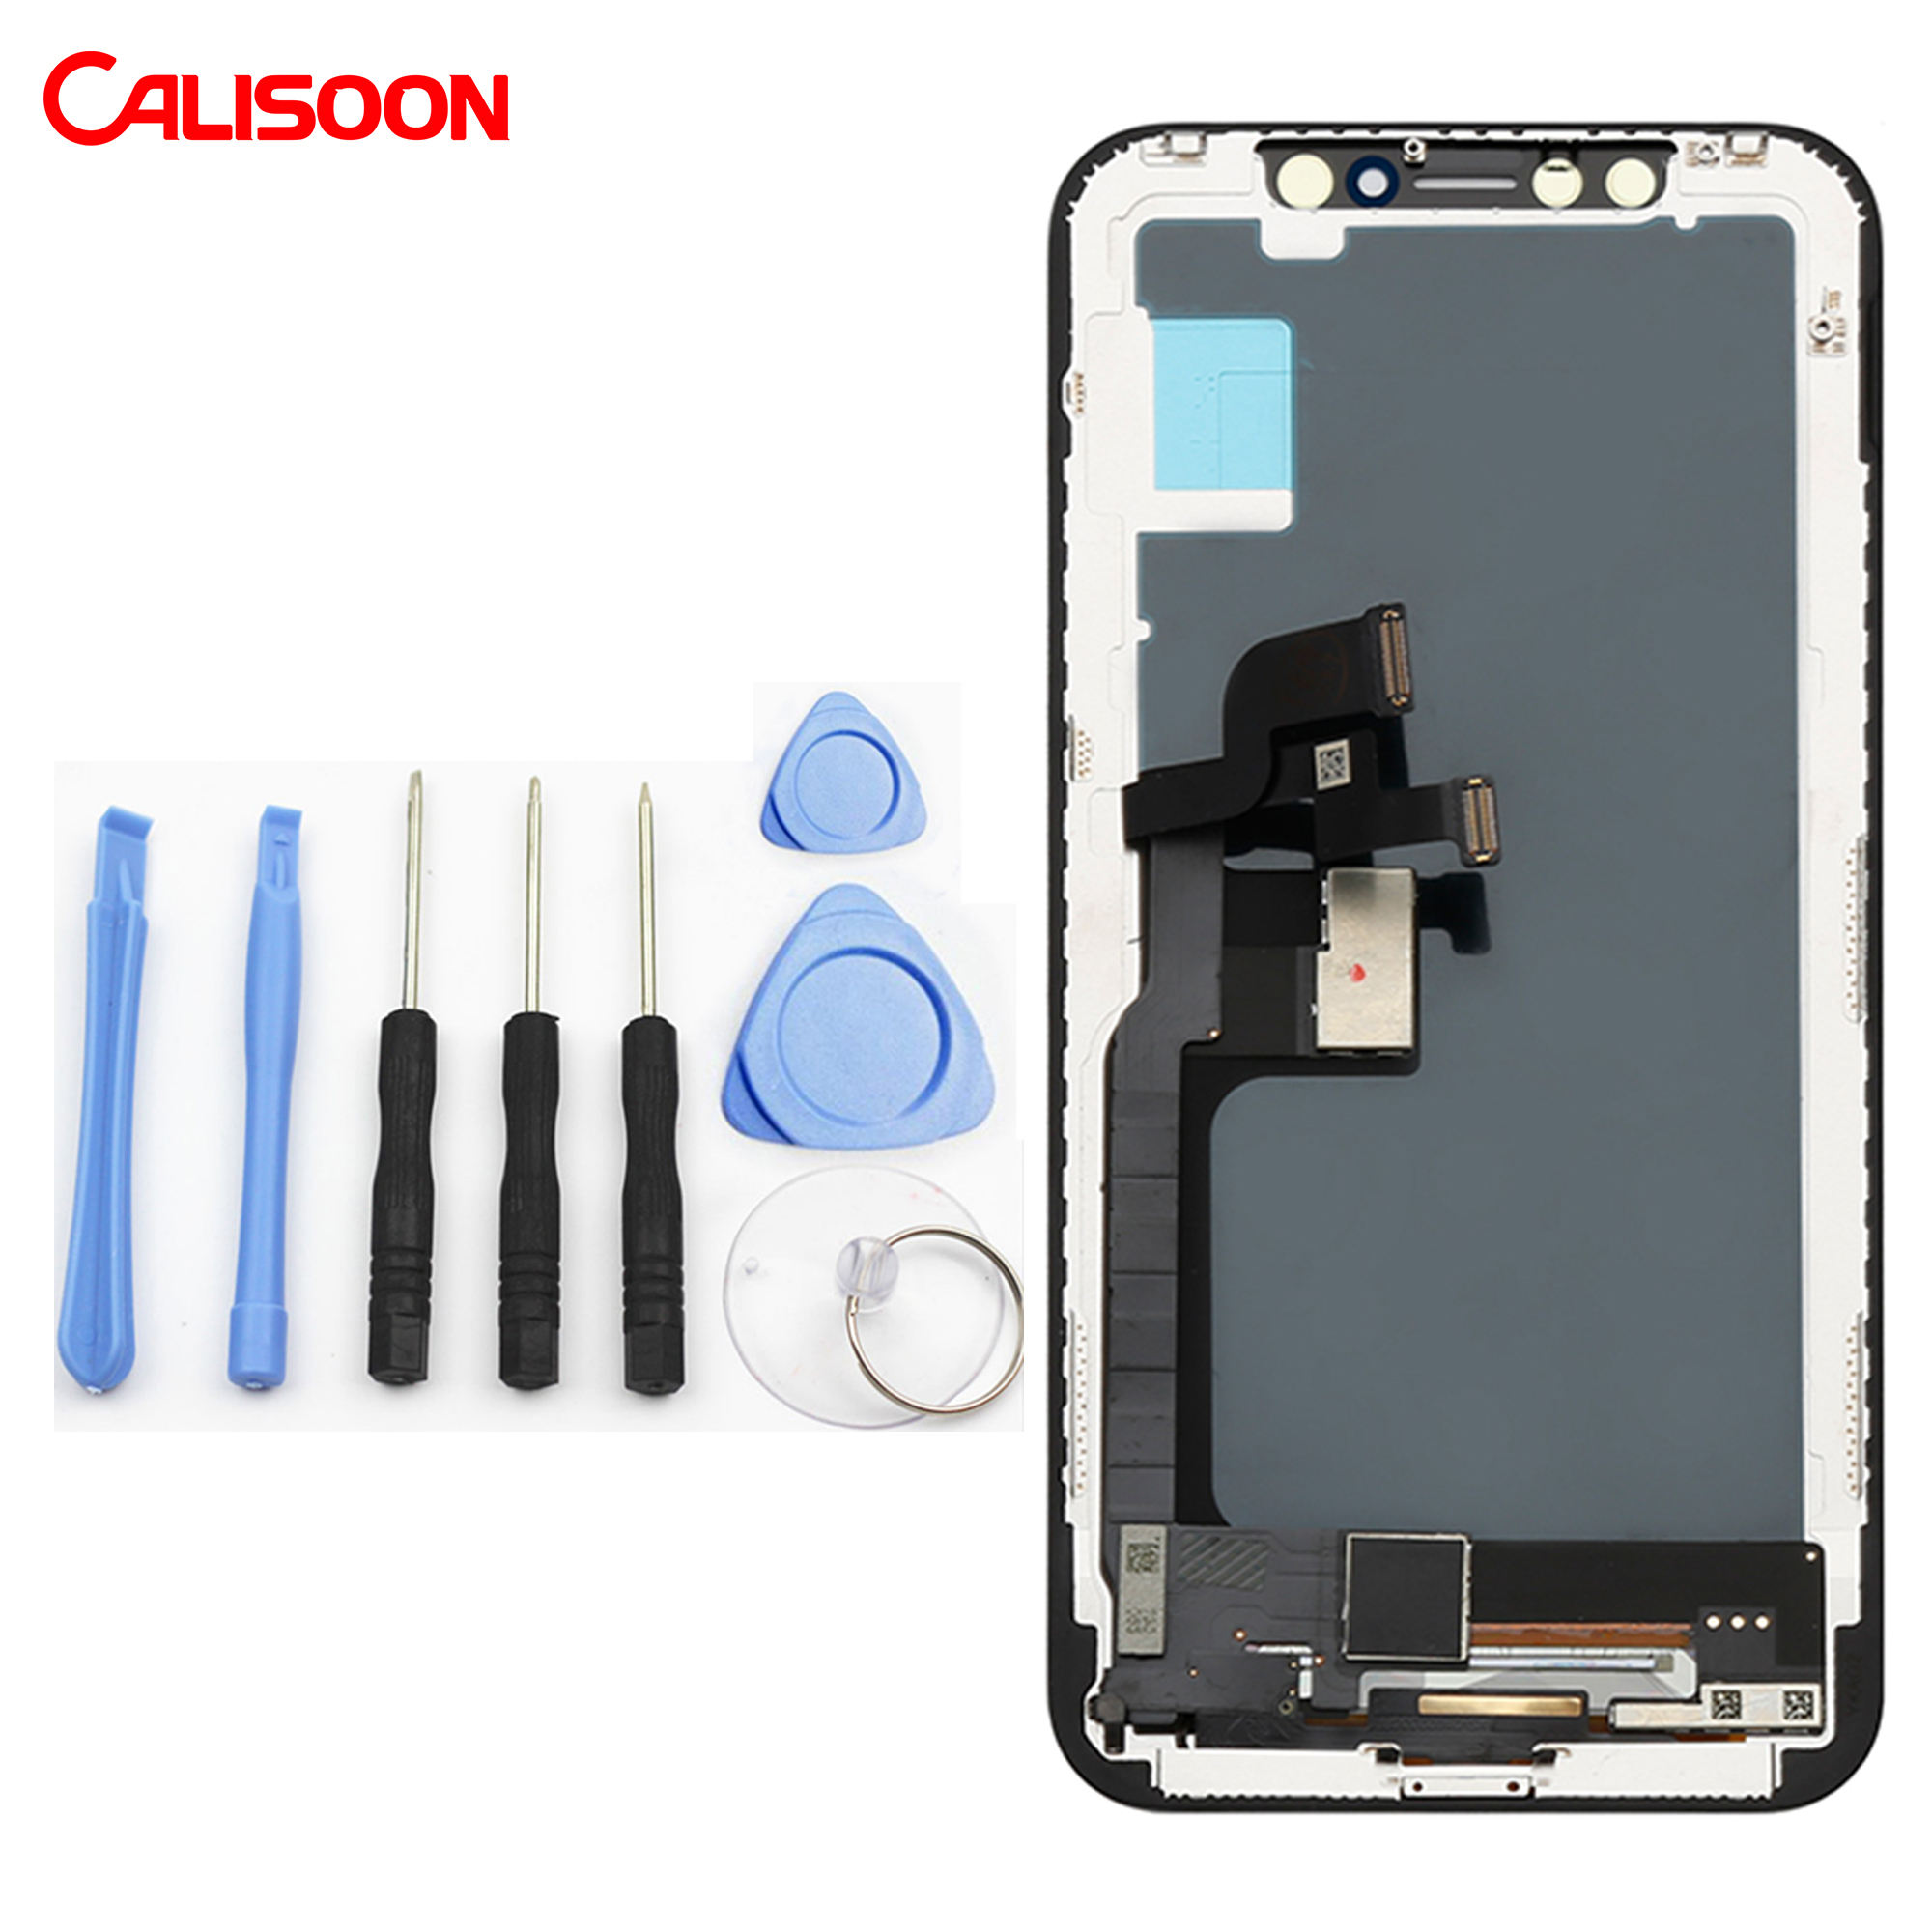 FREE Repair Tools With Touch Screen Display Digitizer Assembly LCD For Iphone 5 5s 6 6s 7 plus 8 plus X XR XS MAX